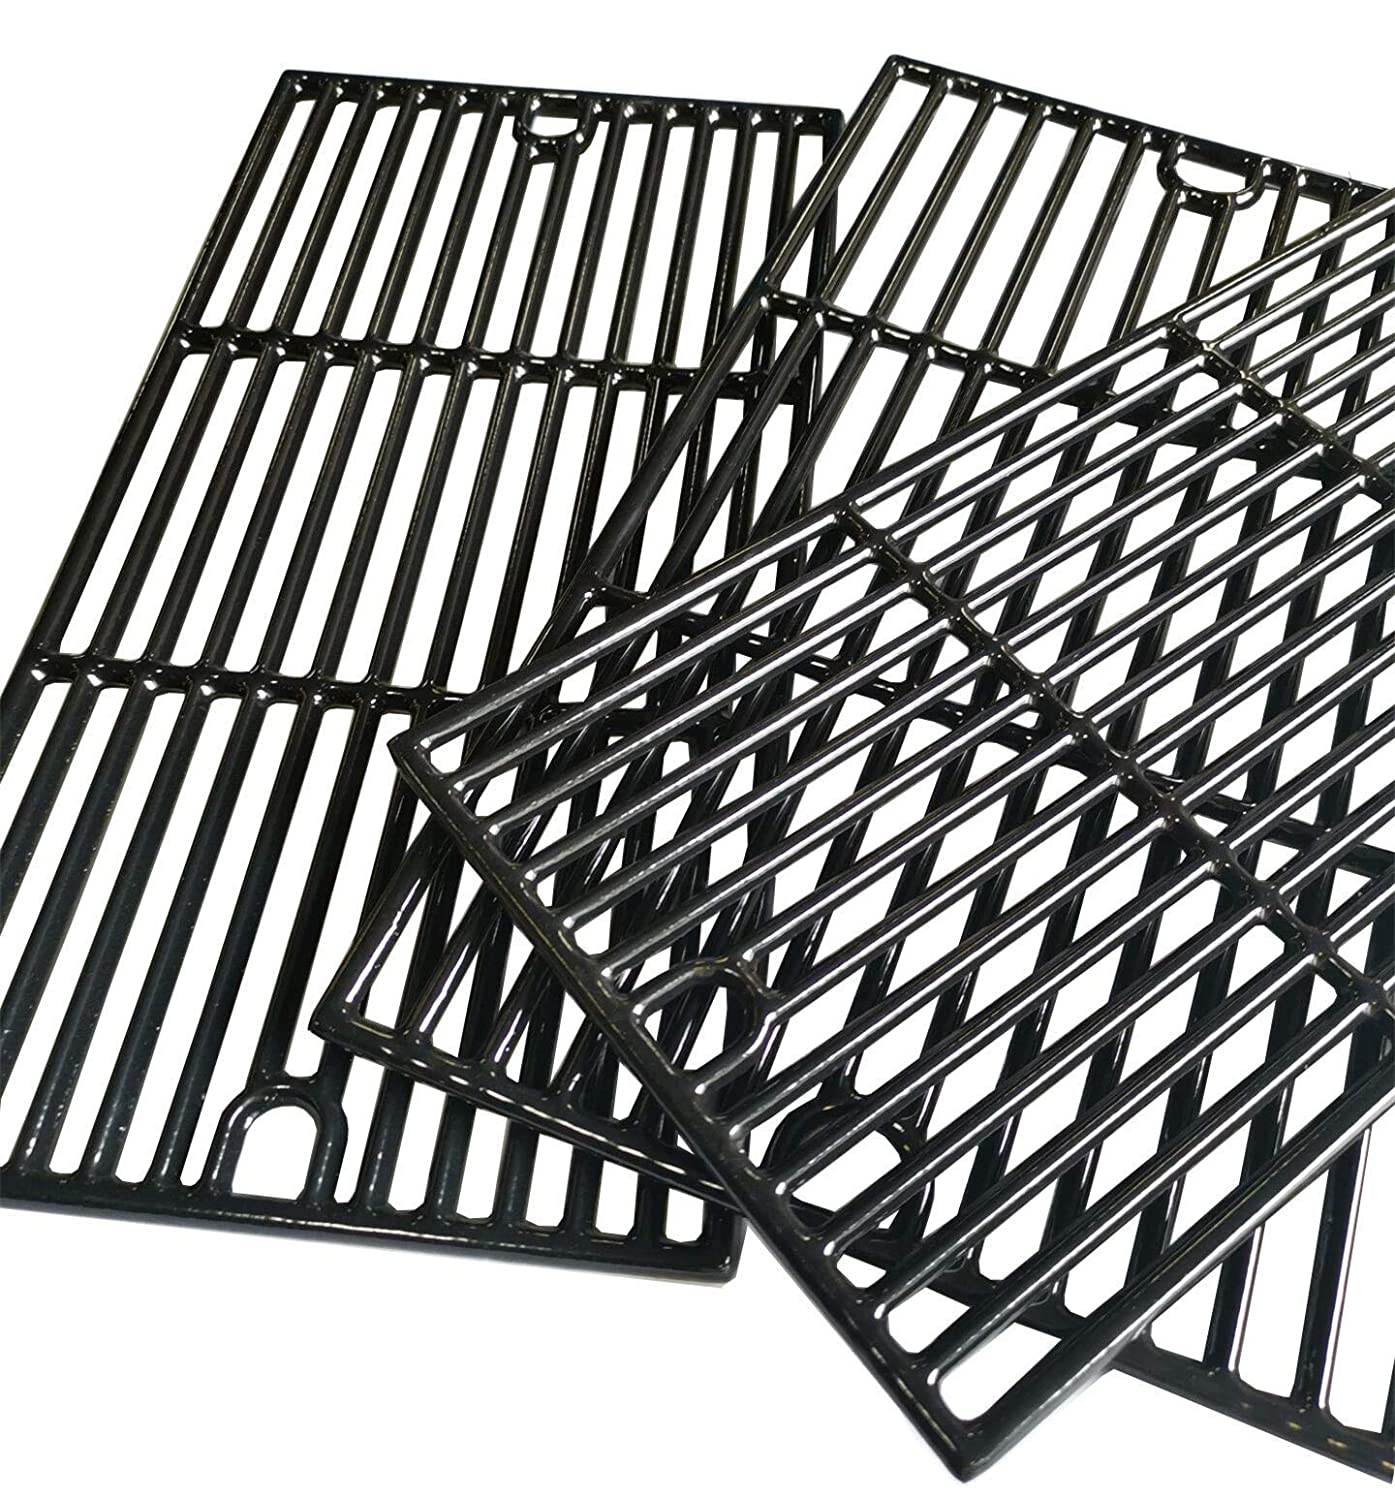 810-9425-W PCG233 810-1456-S Set of 3 Hongso 17 5//8 Porcelain Coated Cast Iron Cooking Grid Grates Replacement for Brinkmann 810-2545-W 810-7231-W Gas Grill 810-8300-W 810-9520-S